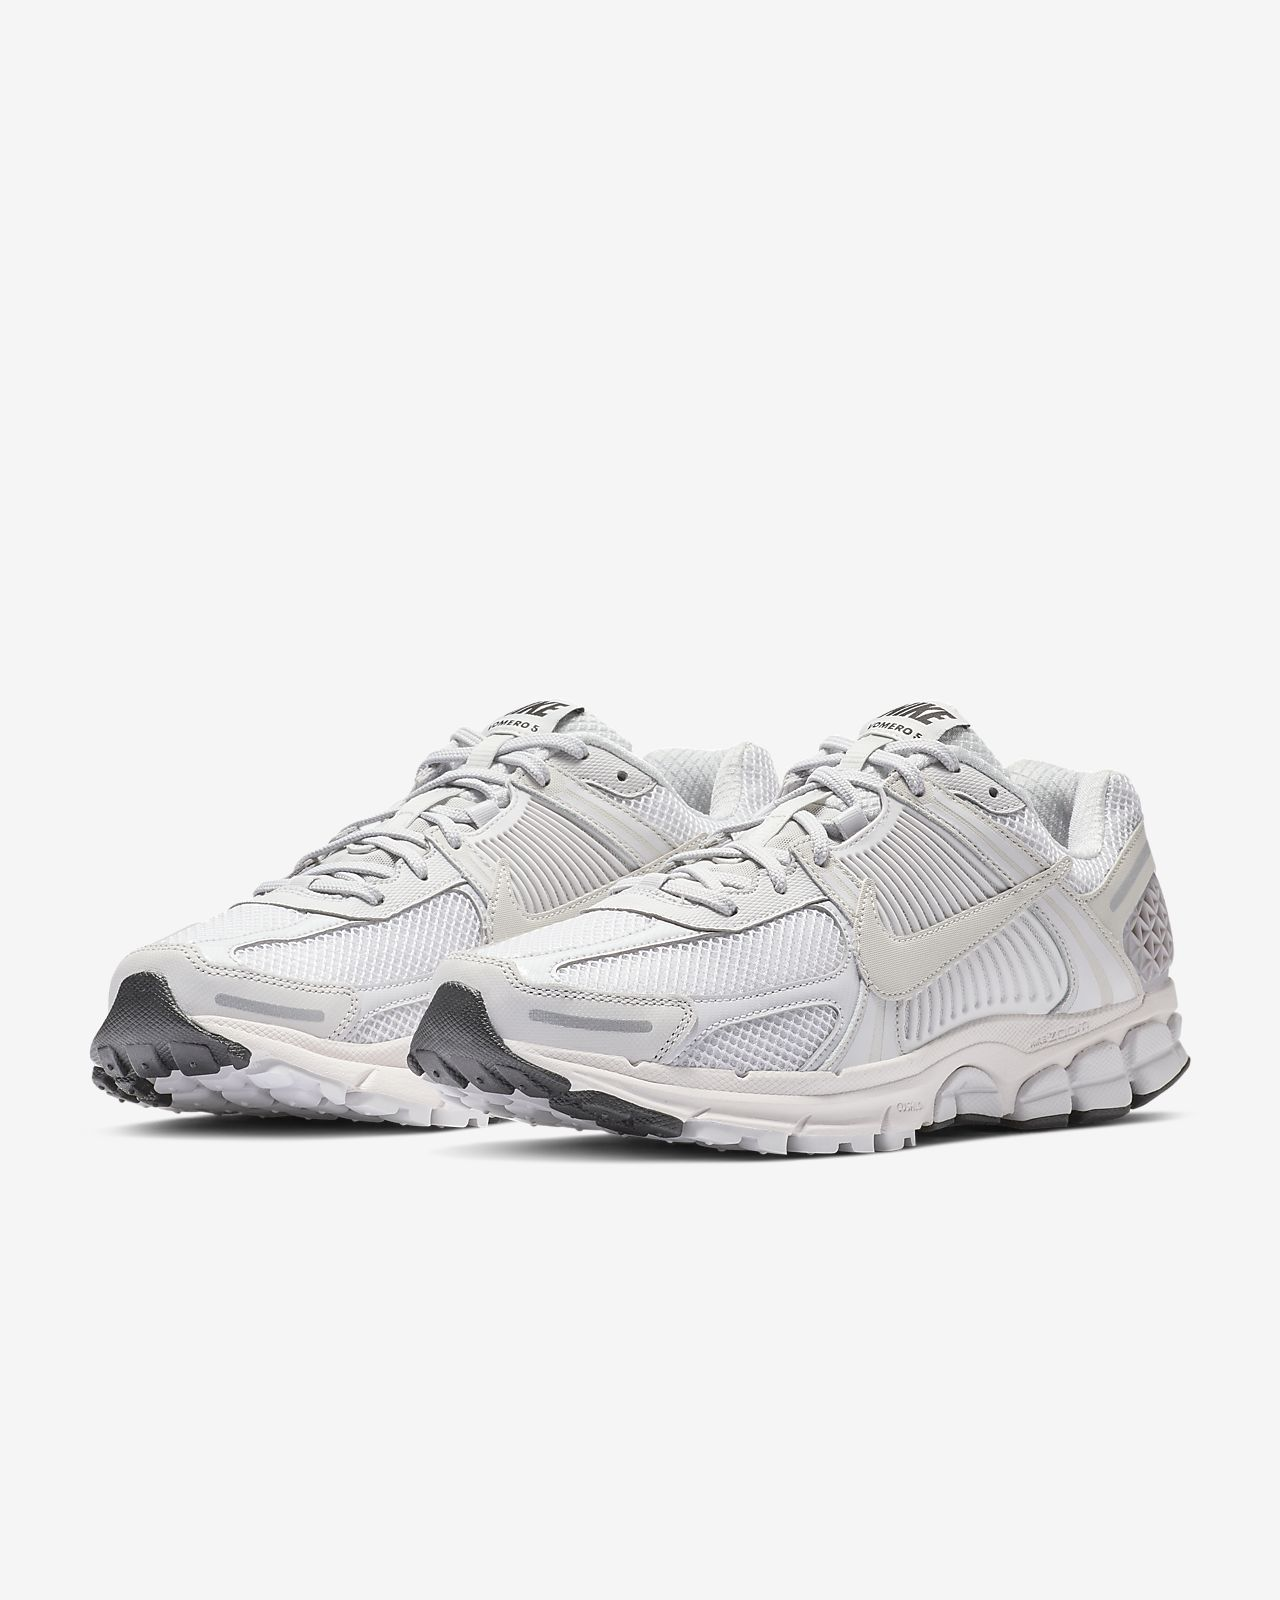 official photos 75bf9 24bed ... Nike Zoom Vomero 5 SP Men s Shoe